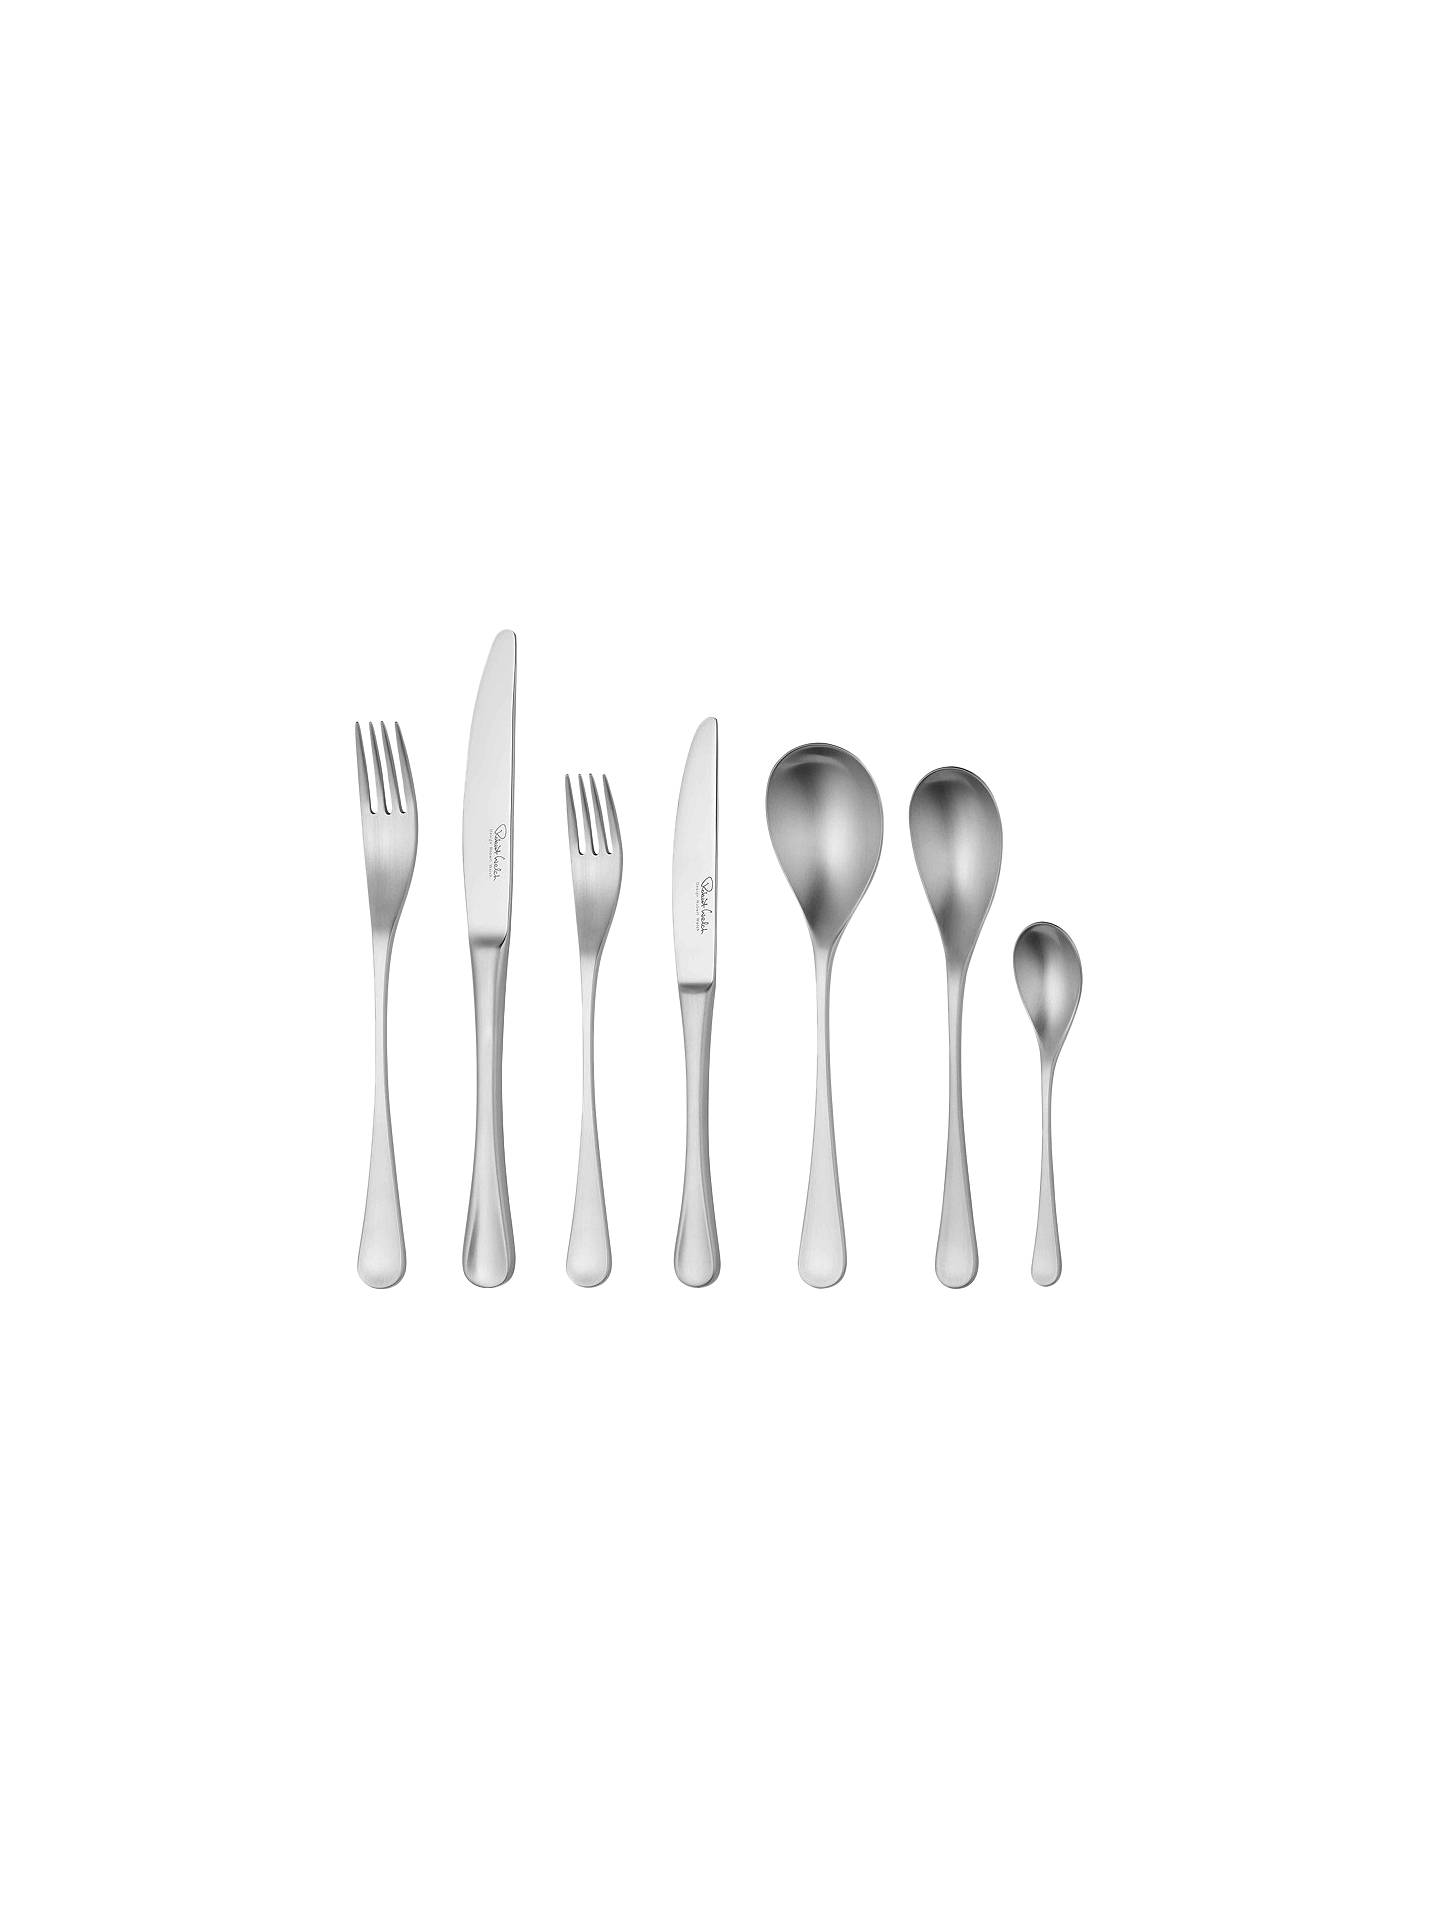 Buy Robert Welch RW2 Satin Stainless Steel Cutlery Set, 84 Piece/12 Place Settings Online at johnlewis.com